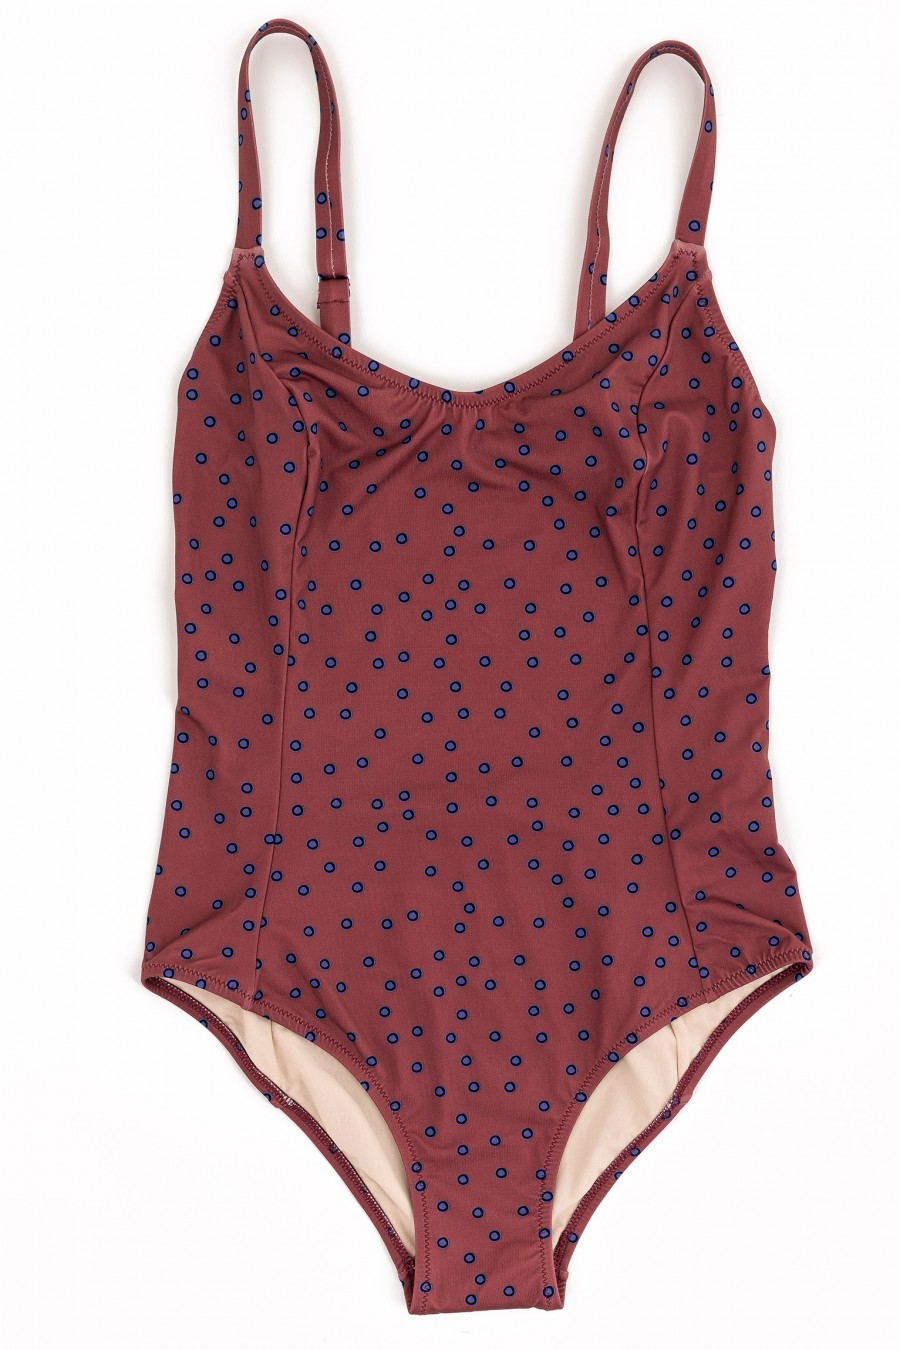 Liberty of London one-piece swimsuit